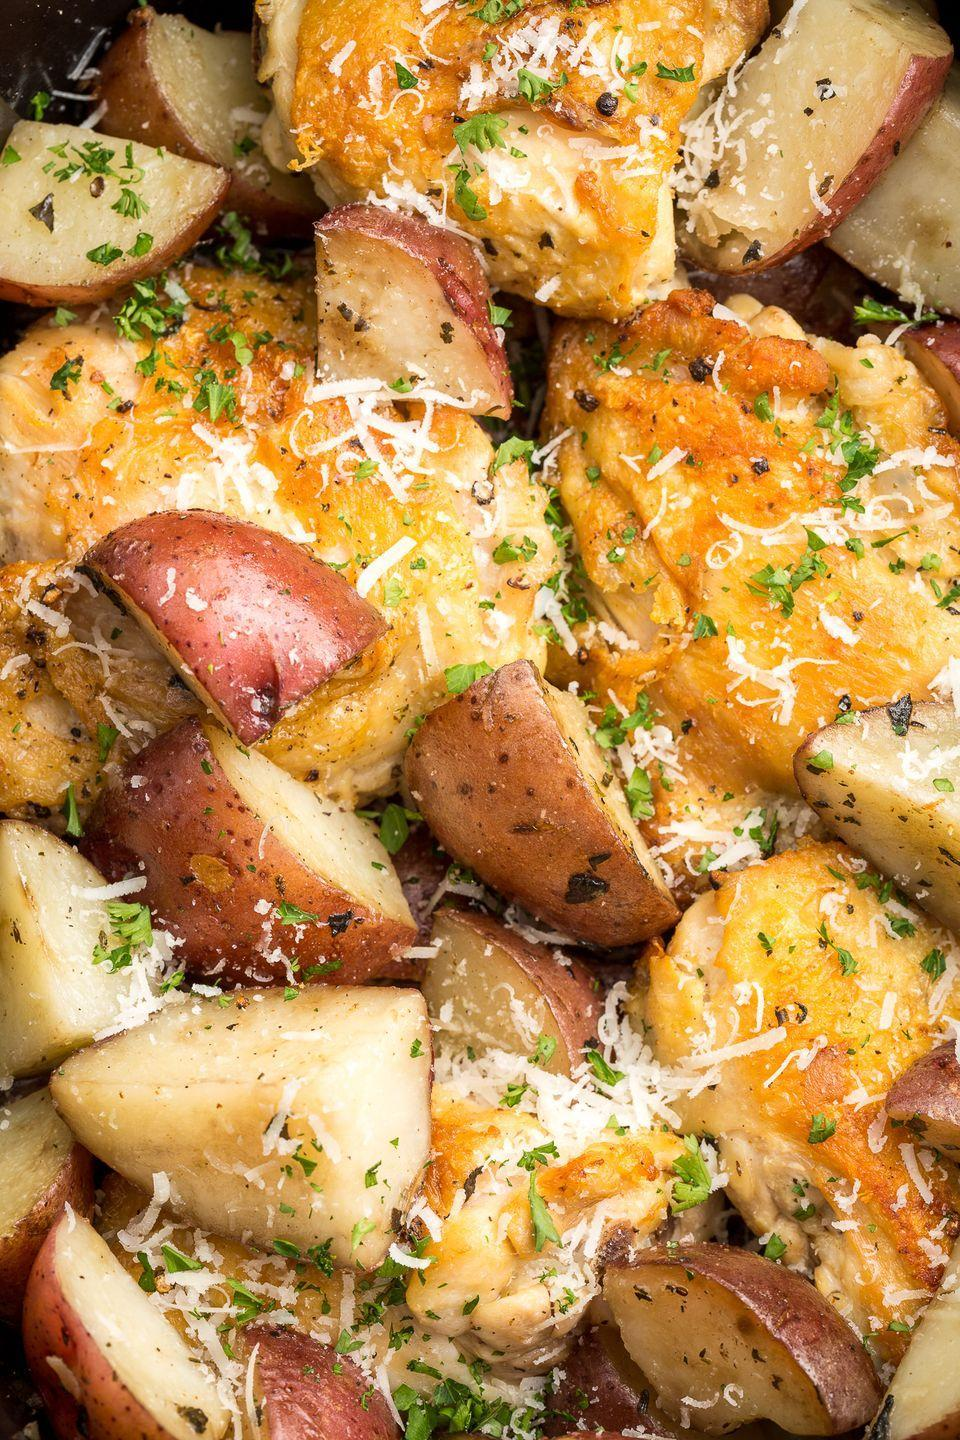 """<p>This recipe is taking over Pinterest. Find out why.</p><p>Get the recipe from <a href=""""/cooking/recipe-ideas/recipes/a46066/slow-cooker-garlic-parmesan-chicken-recipe/"""" data-ylk=""""slk:Delish"""" class=""""link rapid-noclick-resp"""">Delish</a>.</p>"""